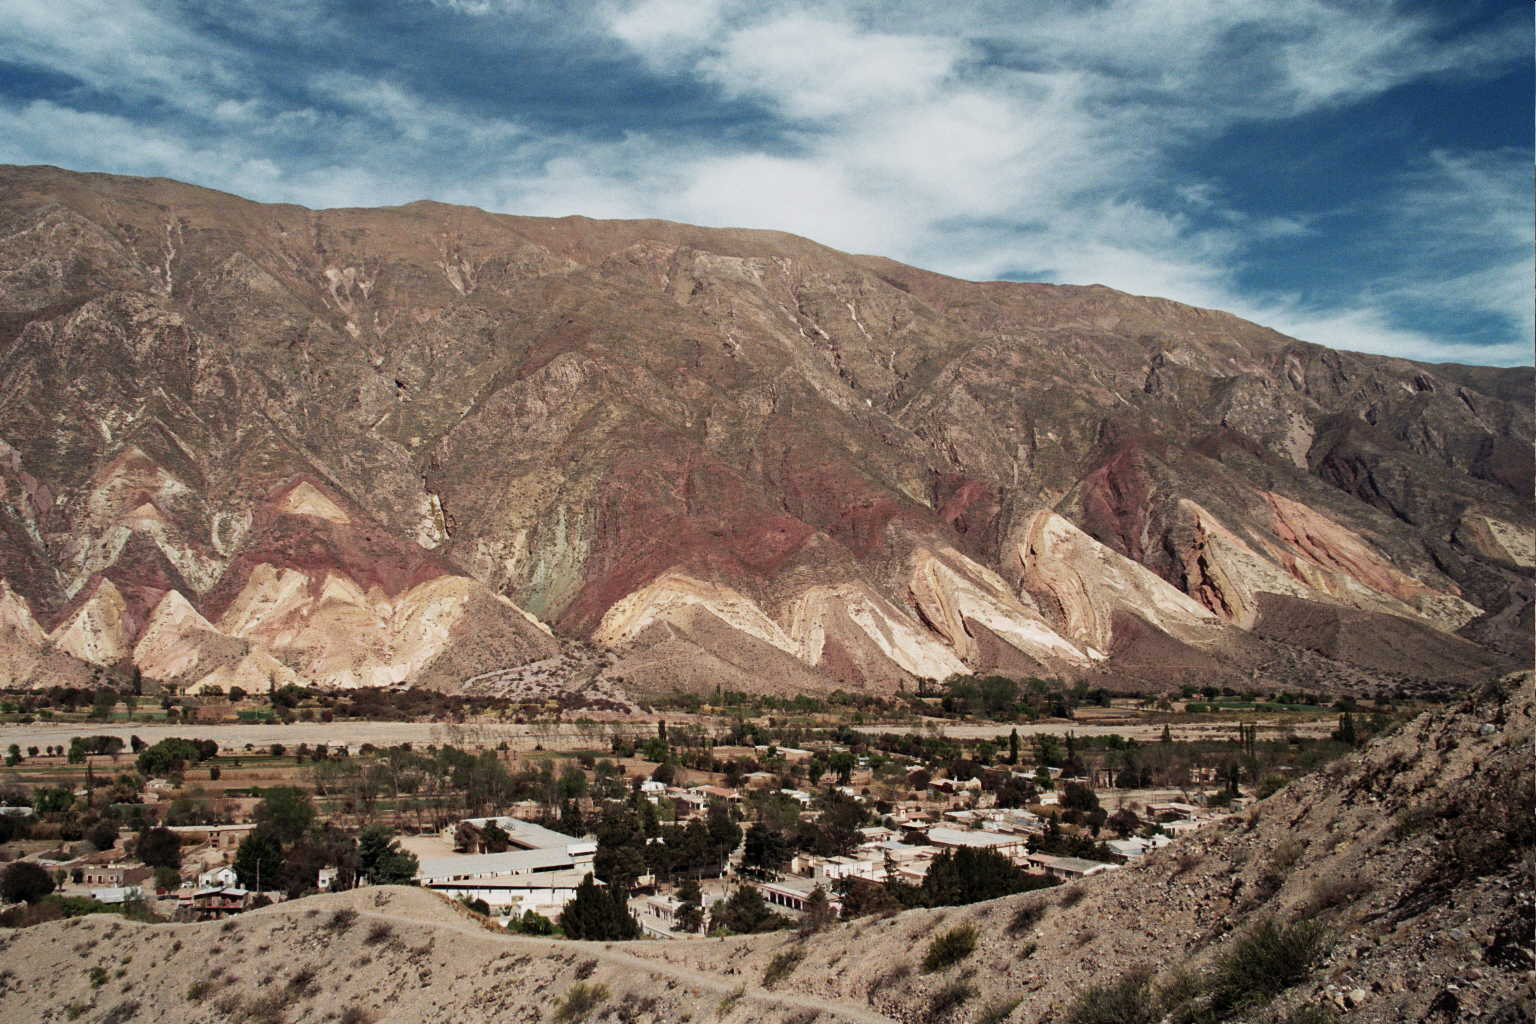 Quebrada de Humahuaca - Photo © Idobi @ Wikimedia Commons